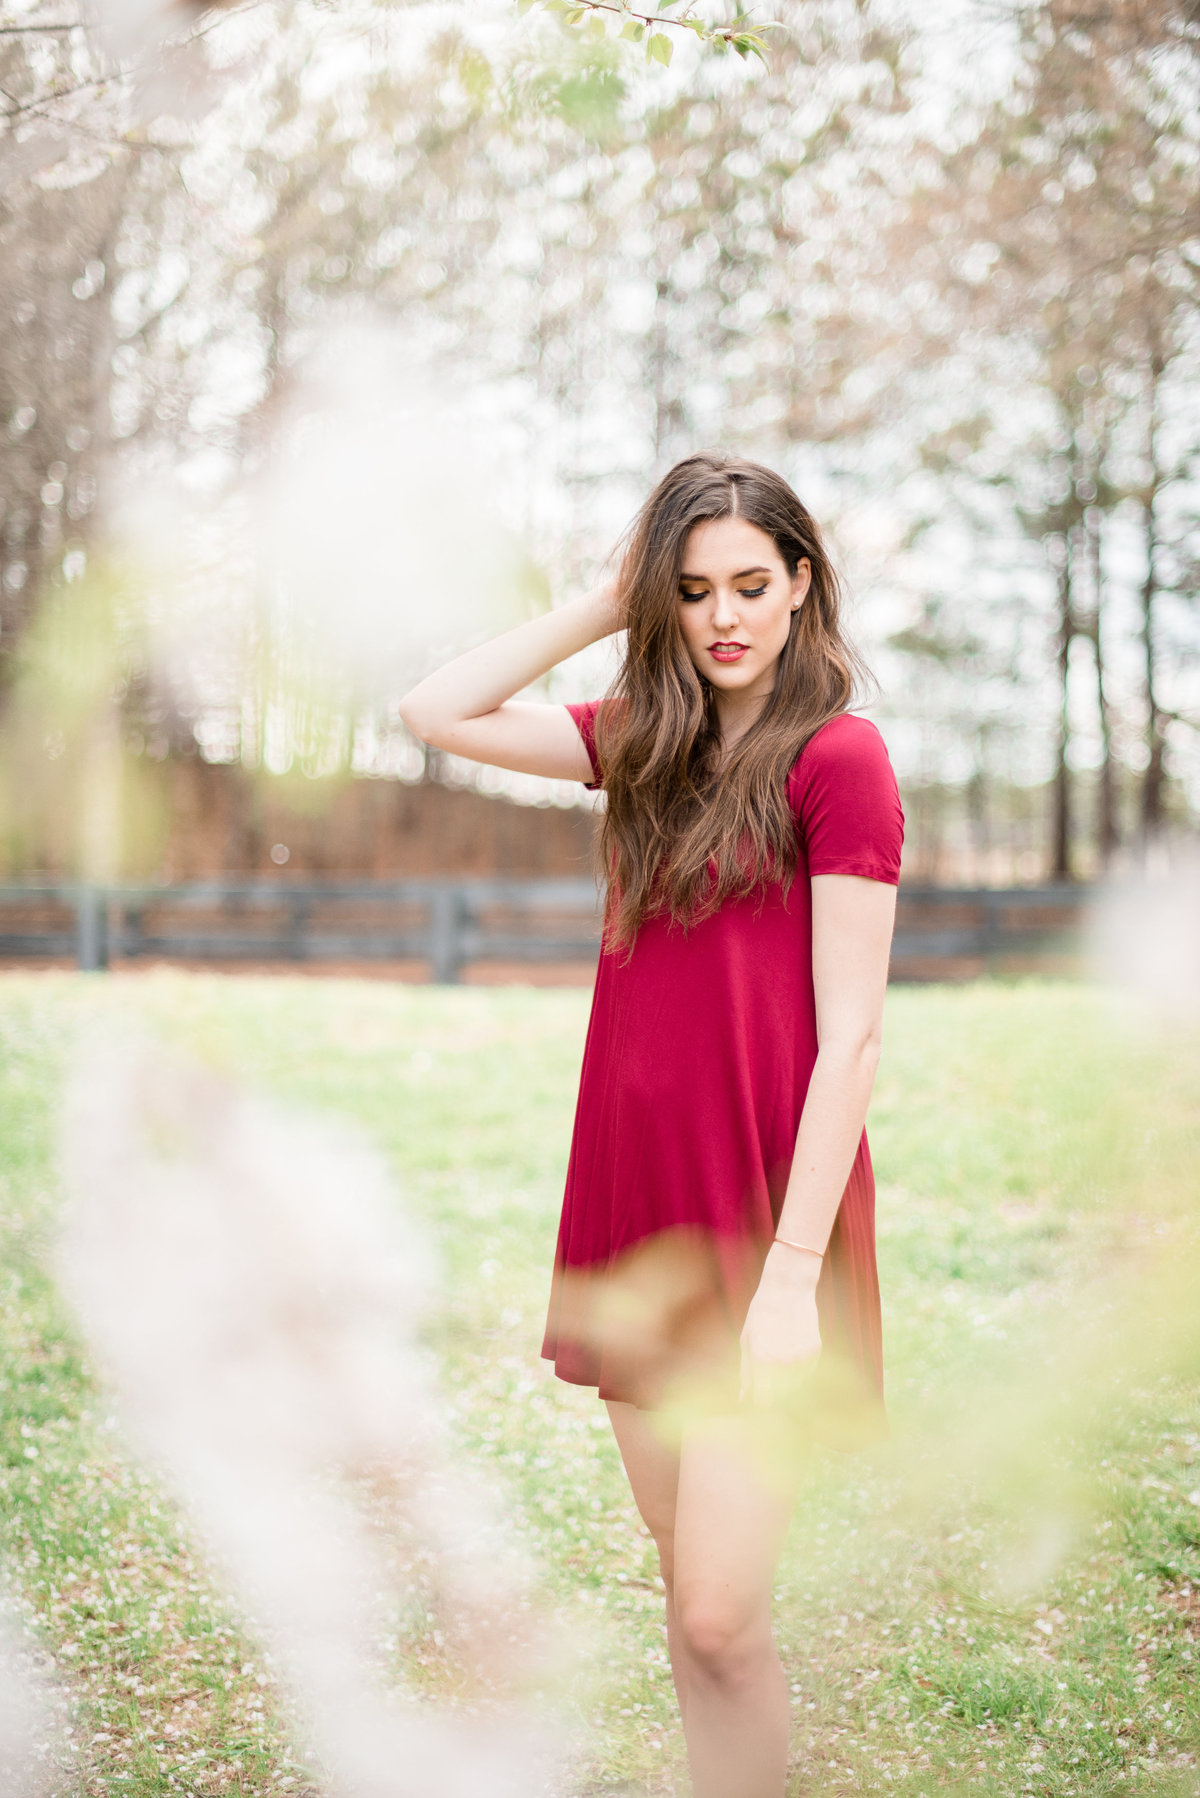 alpharetta-city-senior-shoot-105